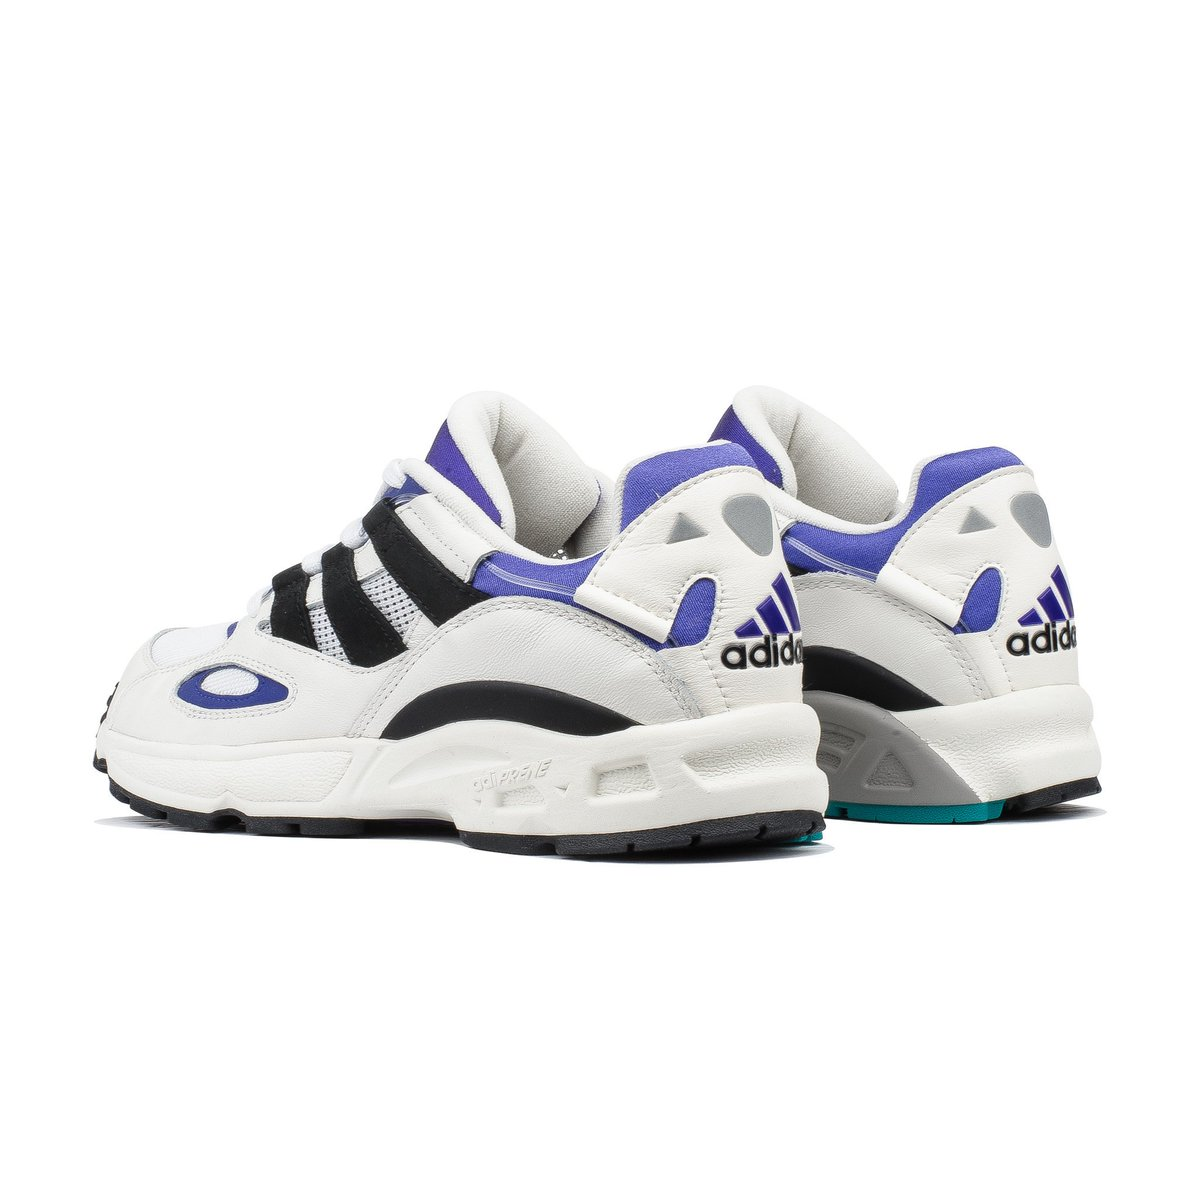 a7856b9e35c09 Get your vintage fix with this white and blue OG colourway of the classic  and chunky adidas LXCON 94 that is now available on  adidasCA for  170 +  free ...